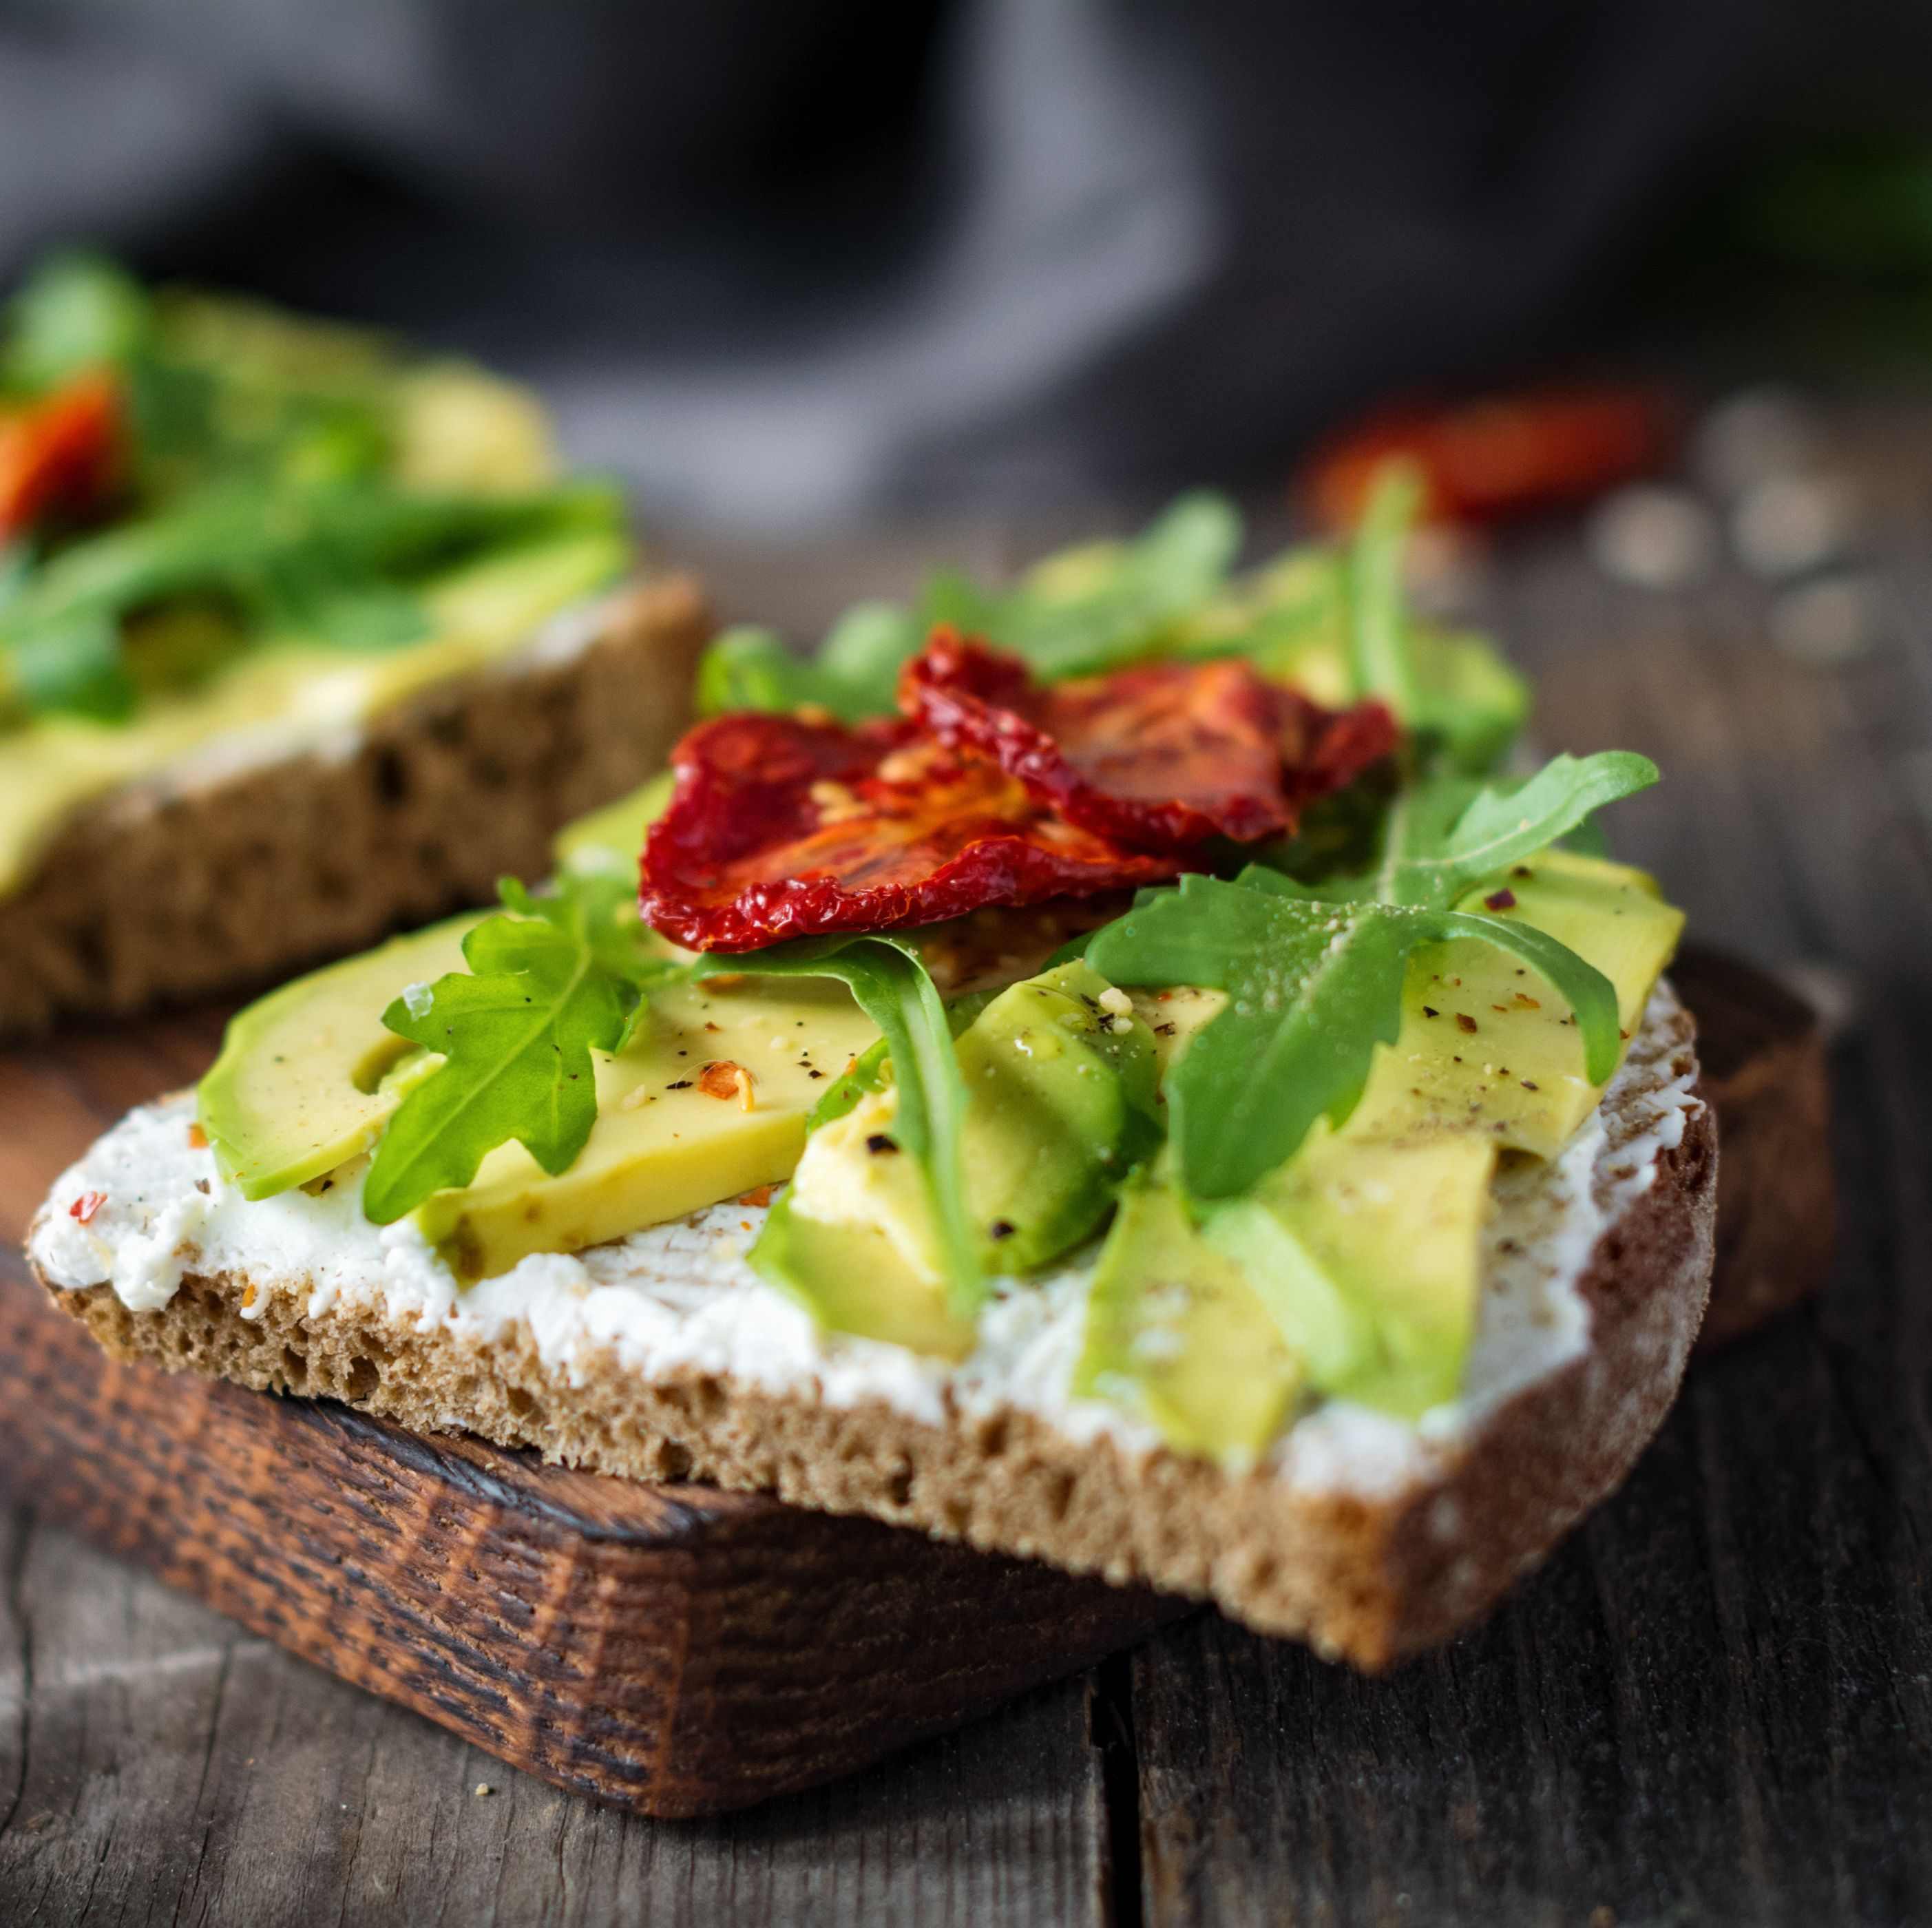 Jillian Michaels' Avocado Toast Recipe